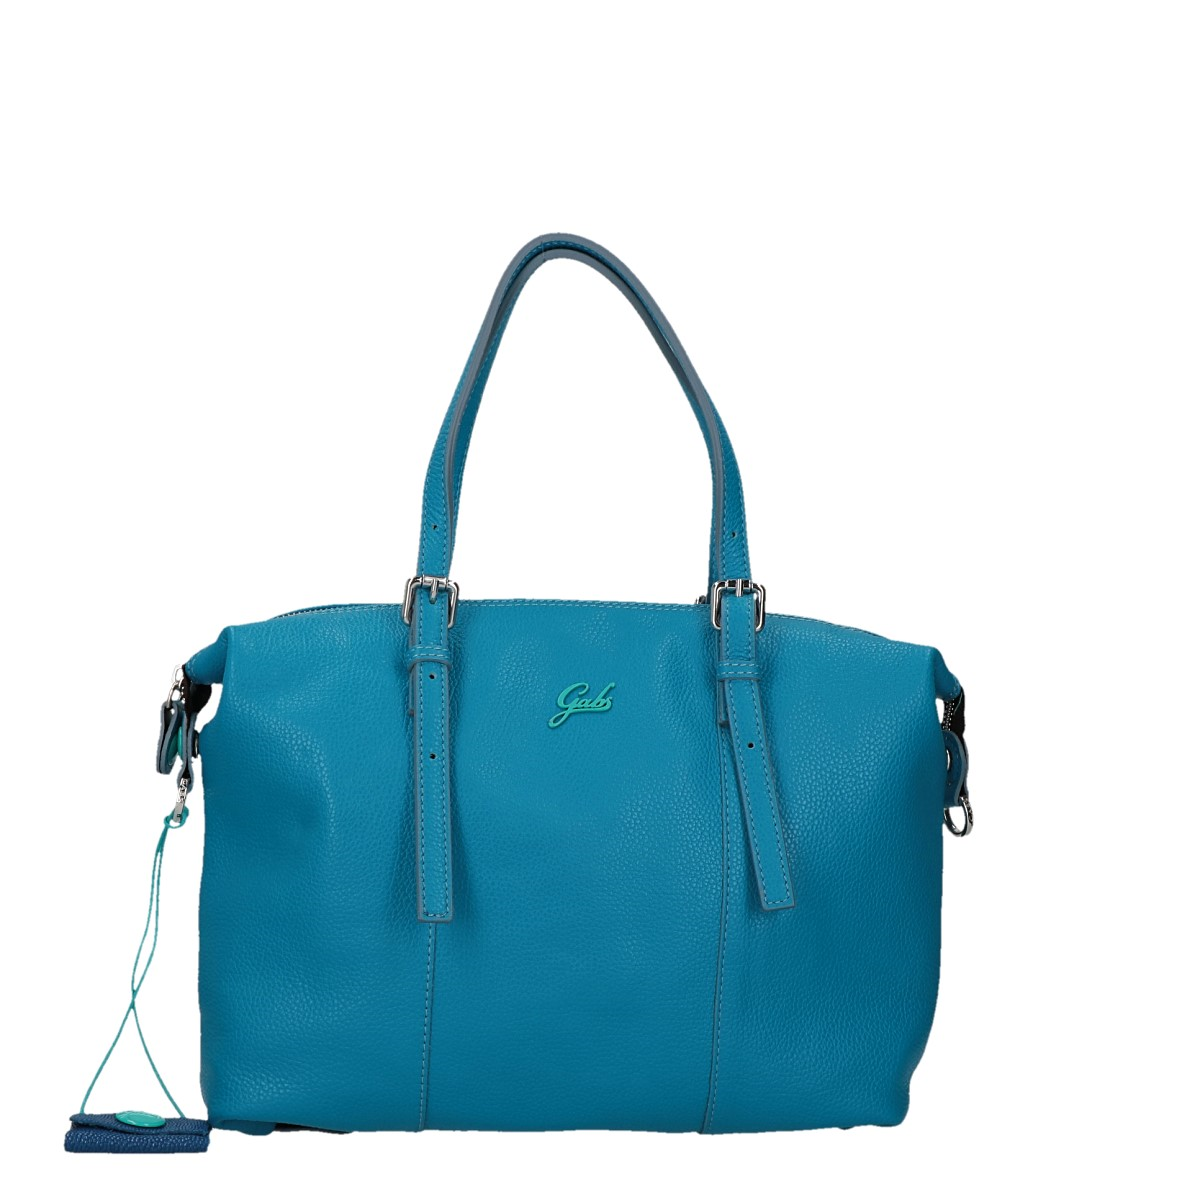 Gabs Goldie Ruga transformable bag in leather basic size M Bluette.